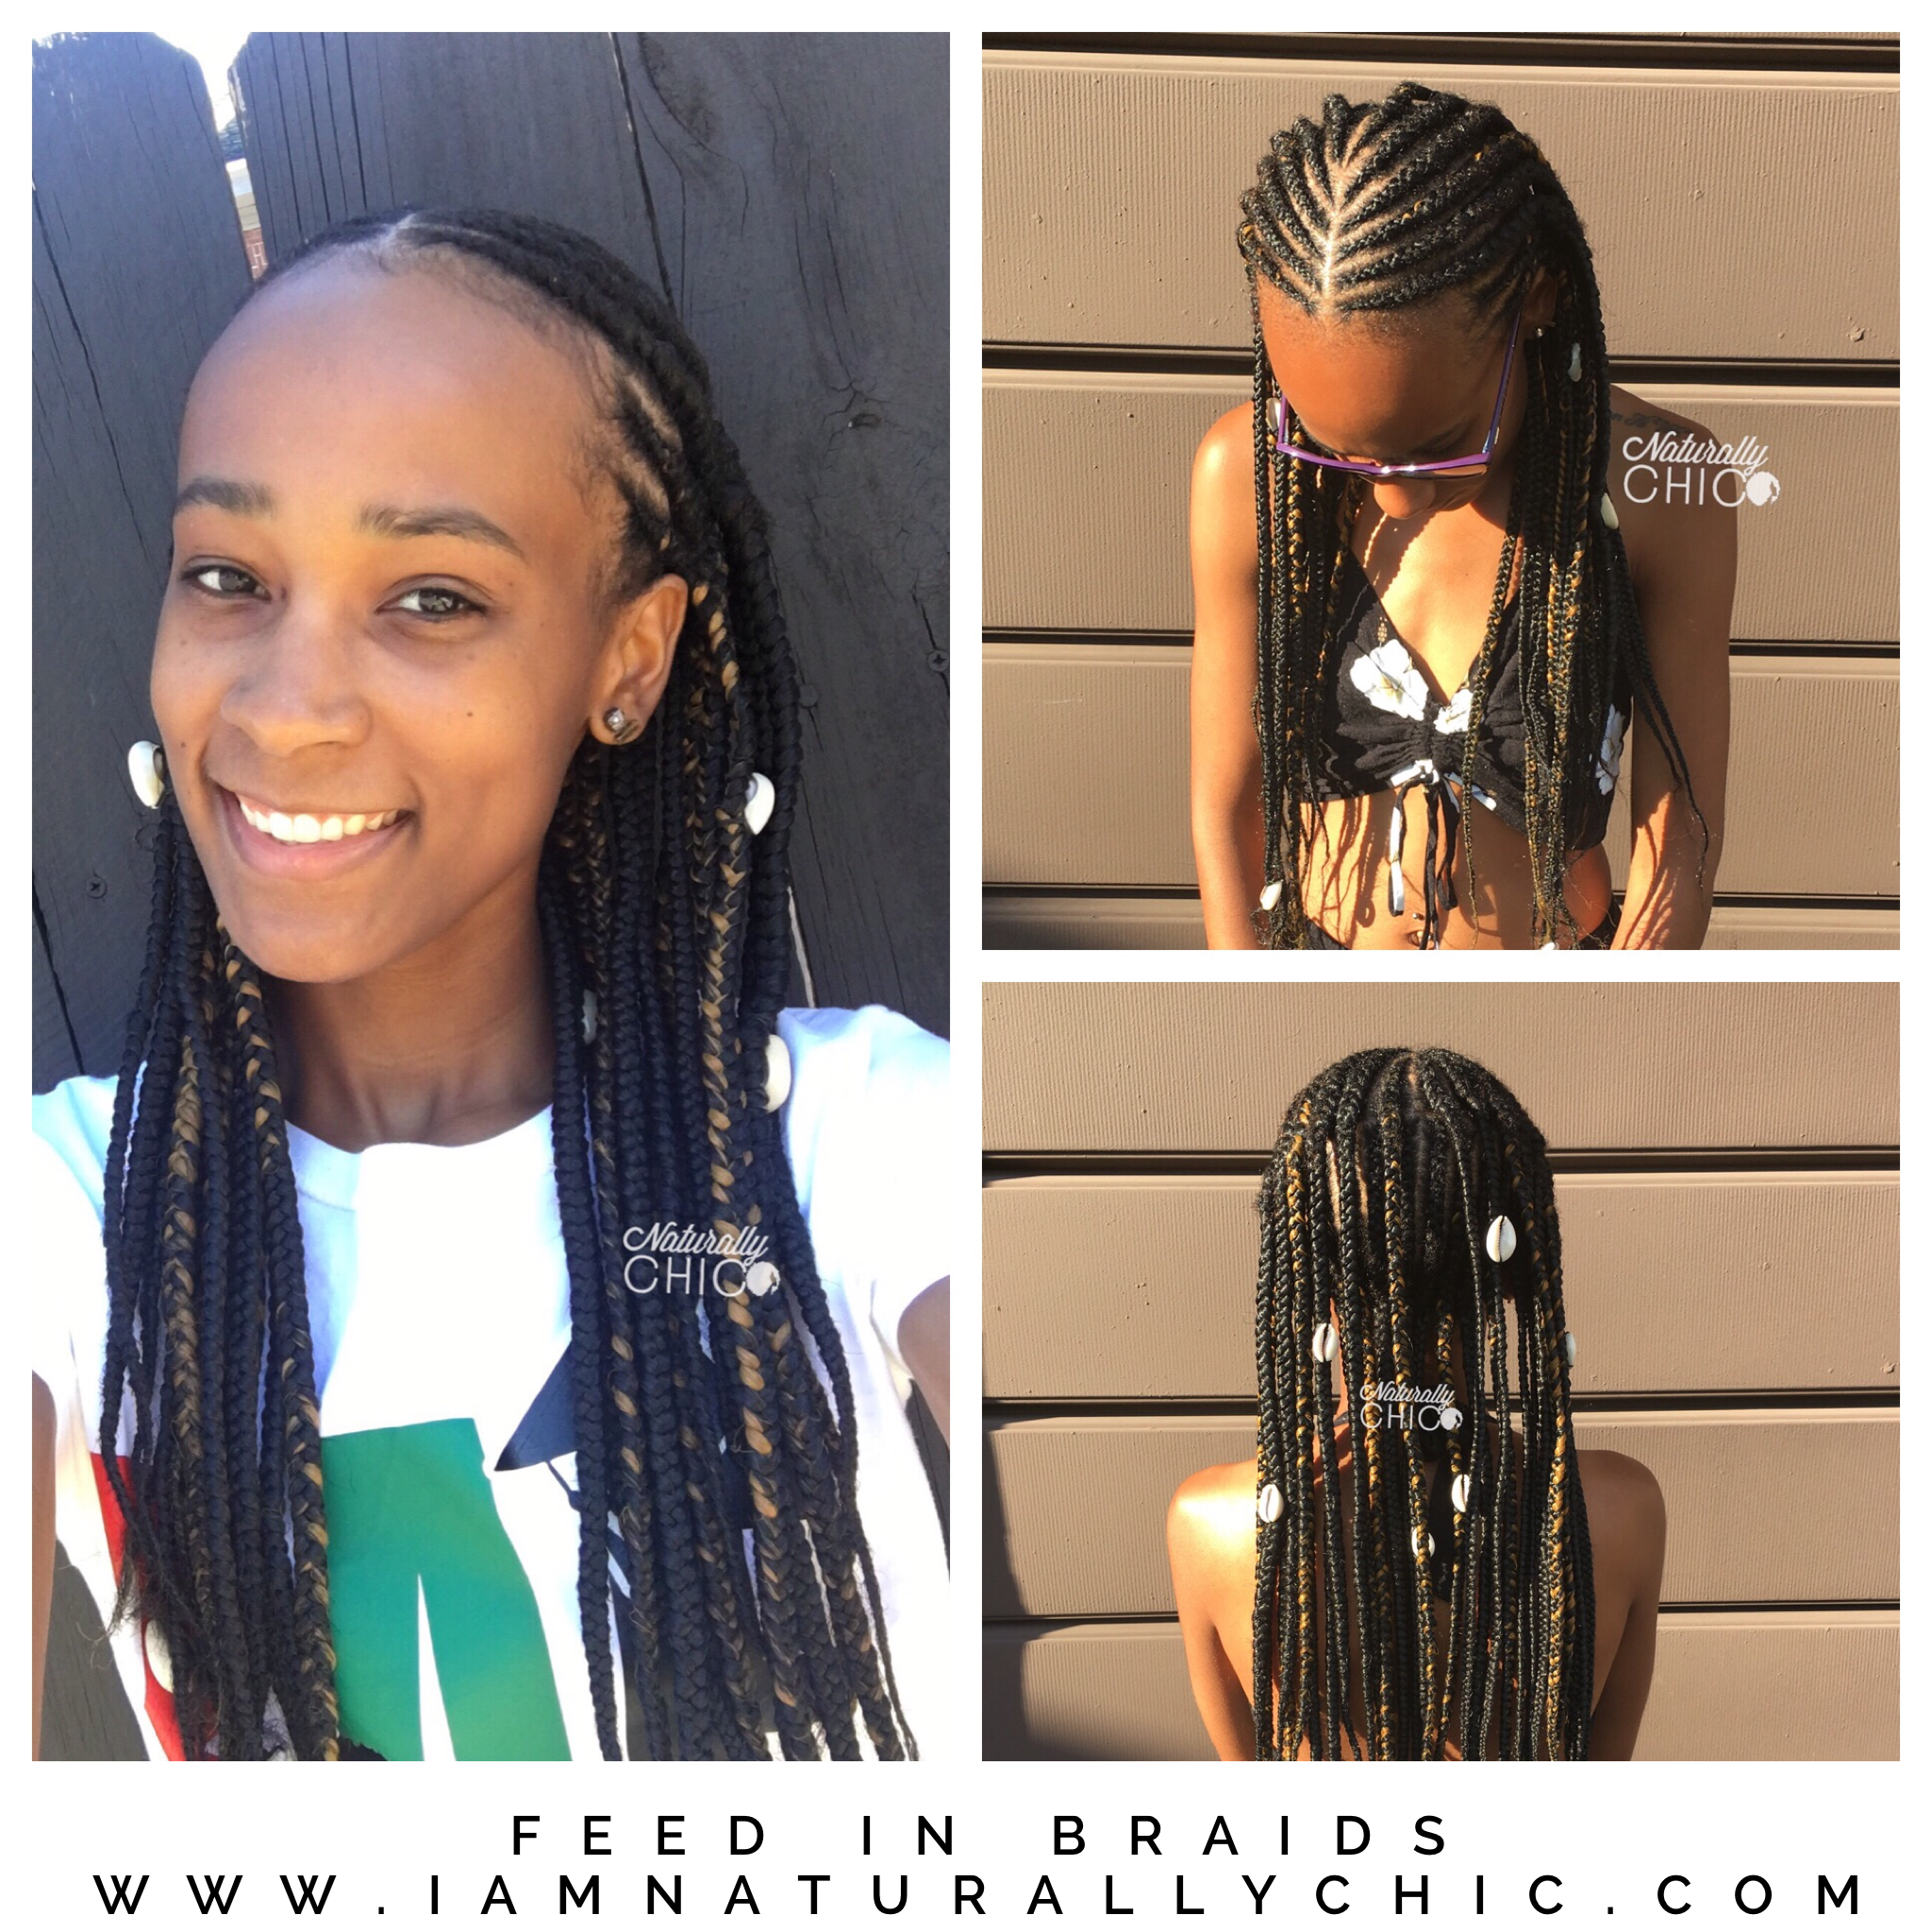 2 Row Of Feed In Braids French Braid Ponytail Braids With Curls Braided Ponytail